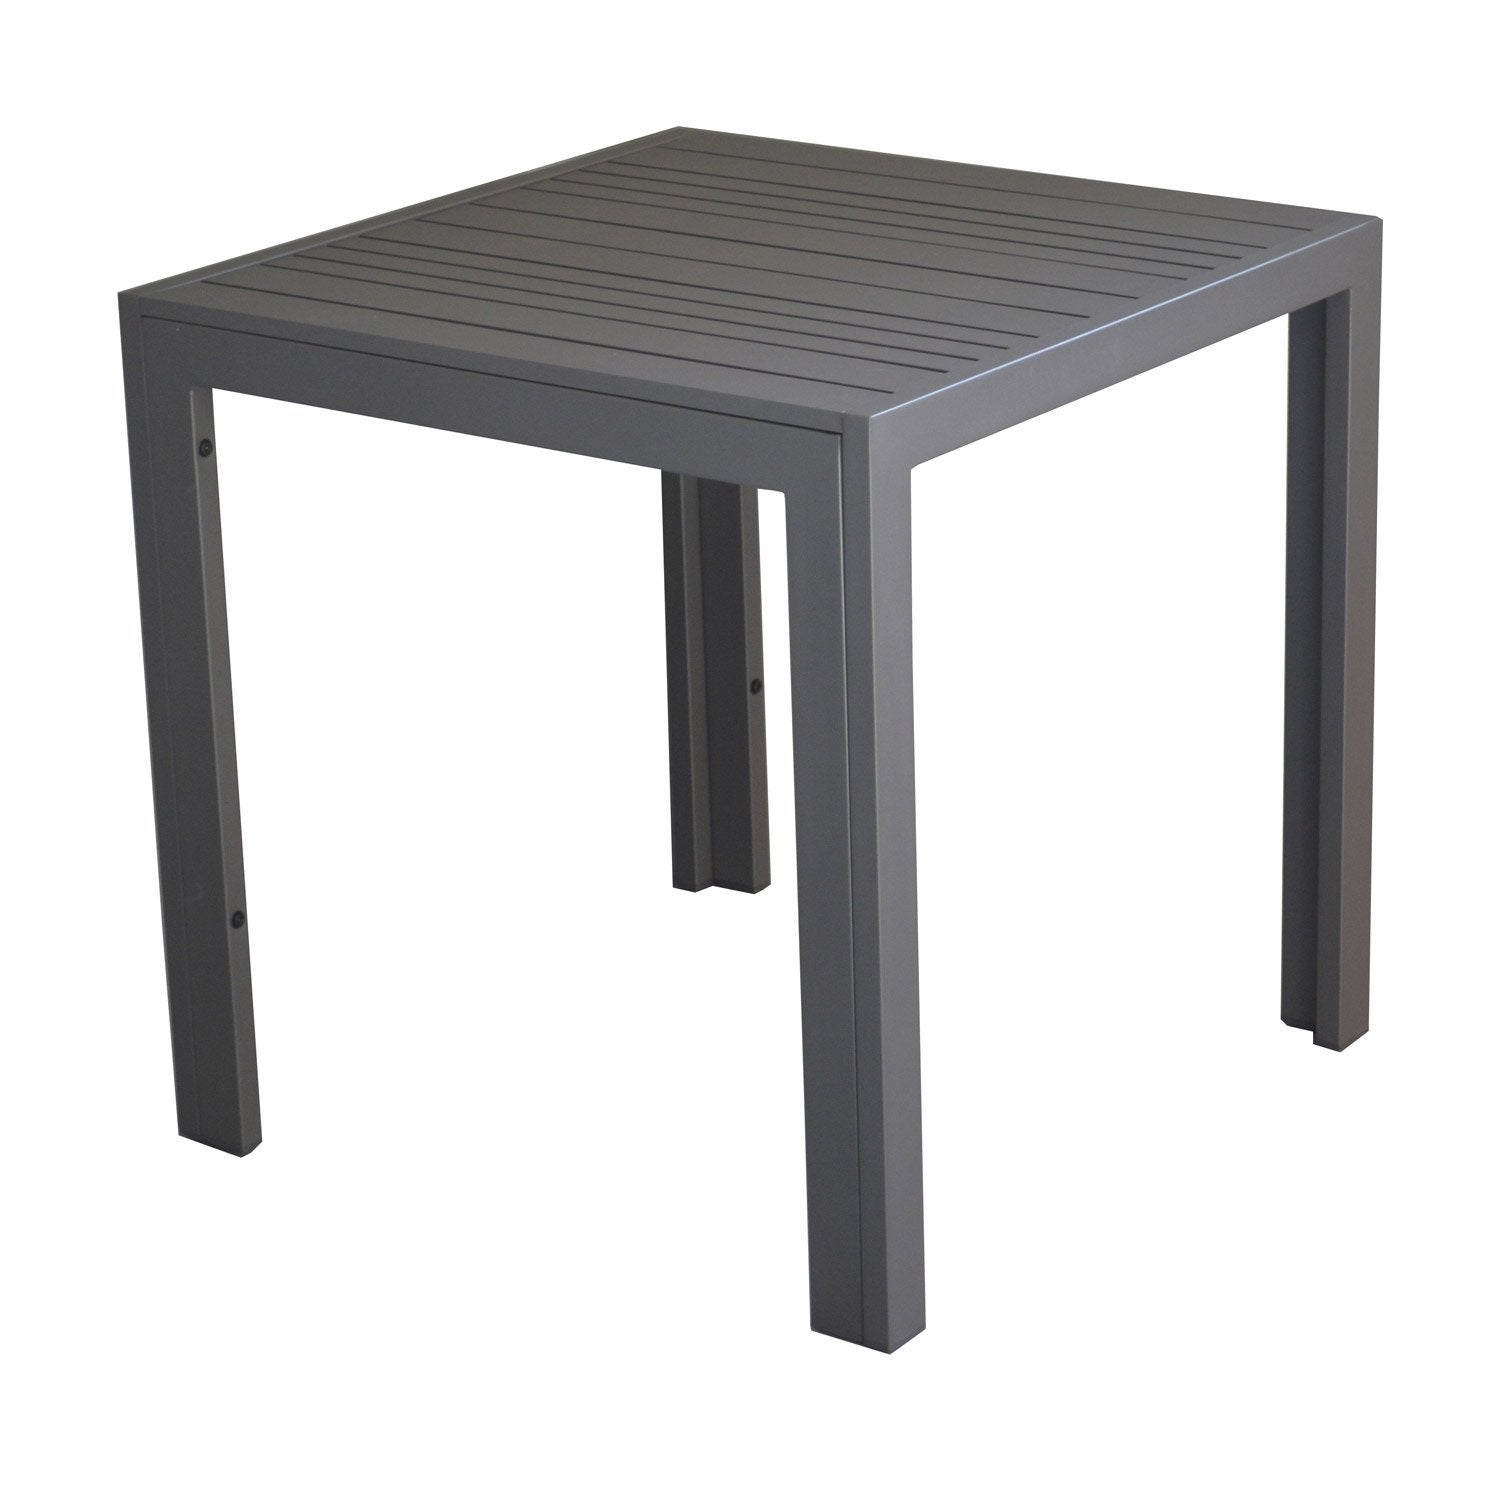 table basse carr e gris 2 personnes leroy merlin. Black Bedroom Furniture Sets. Home Design Ideas